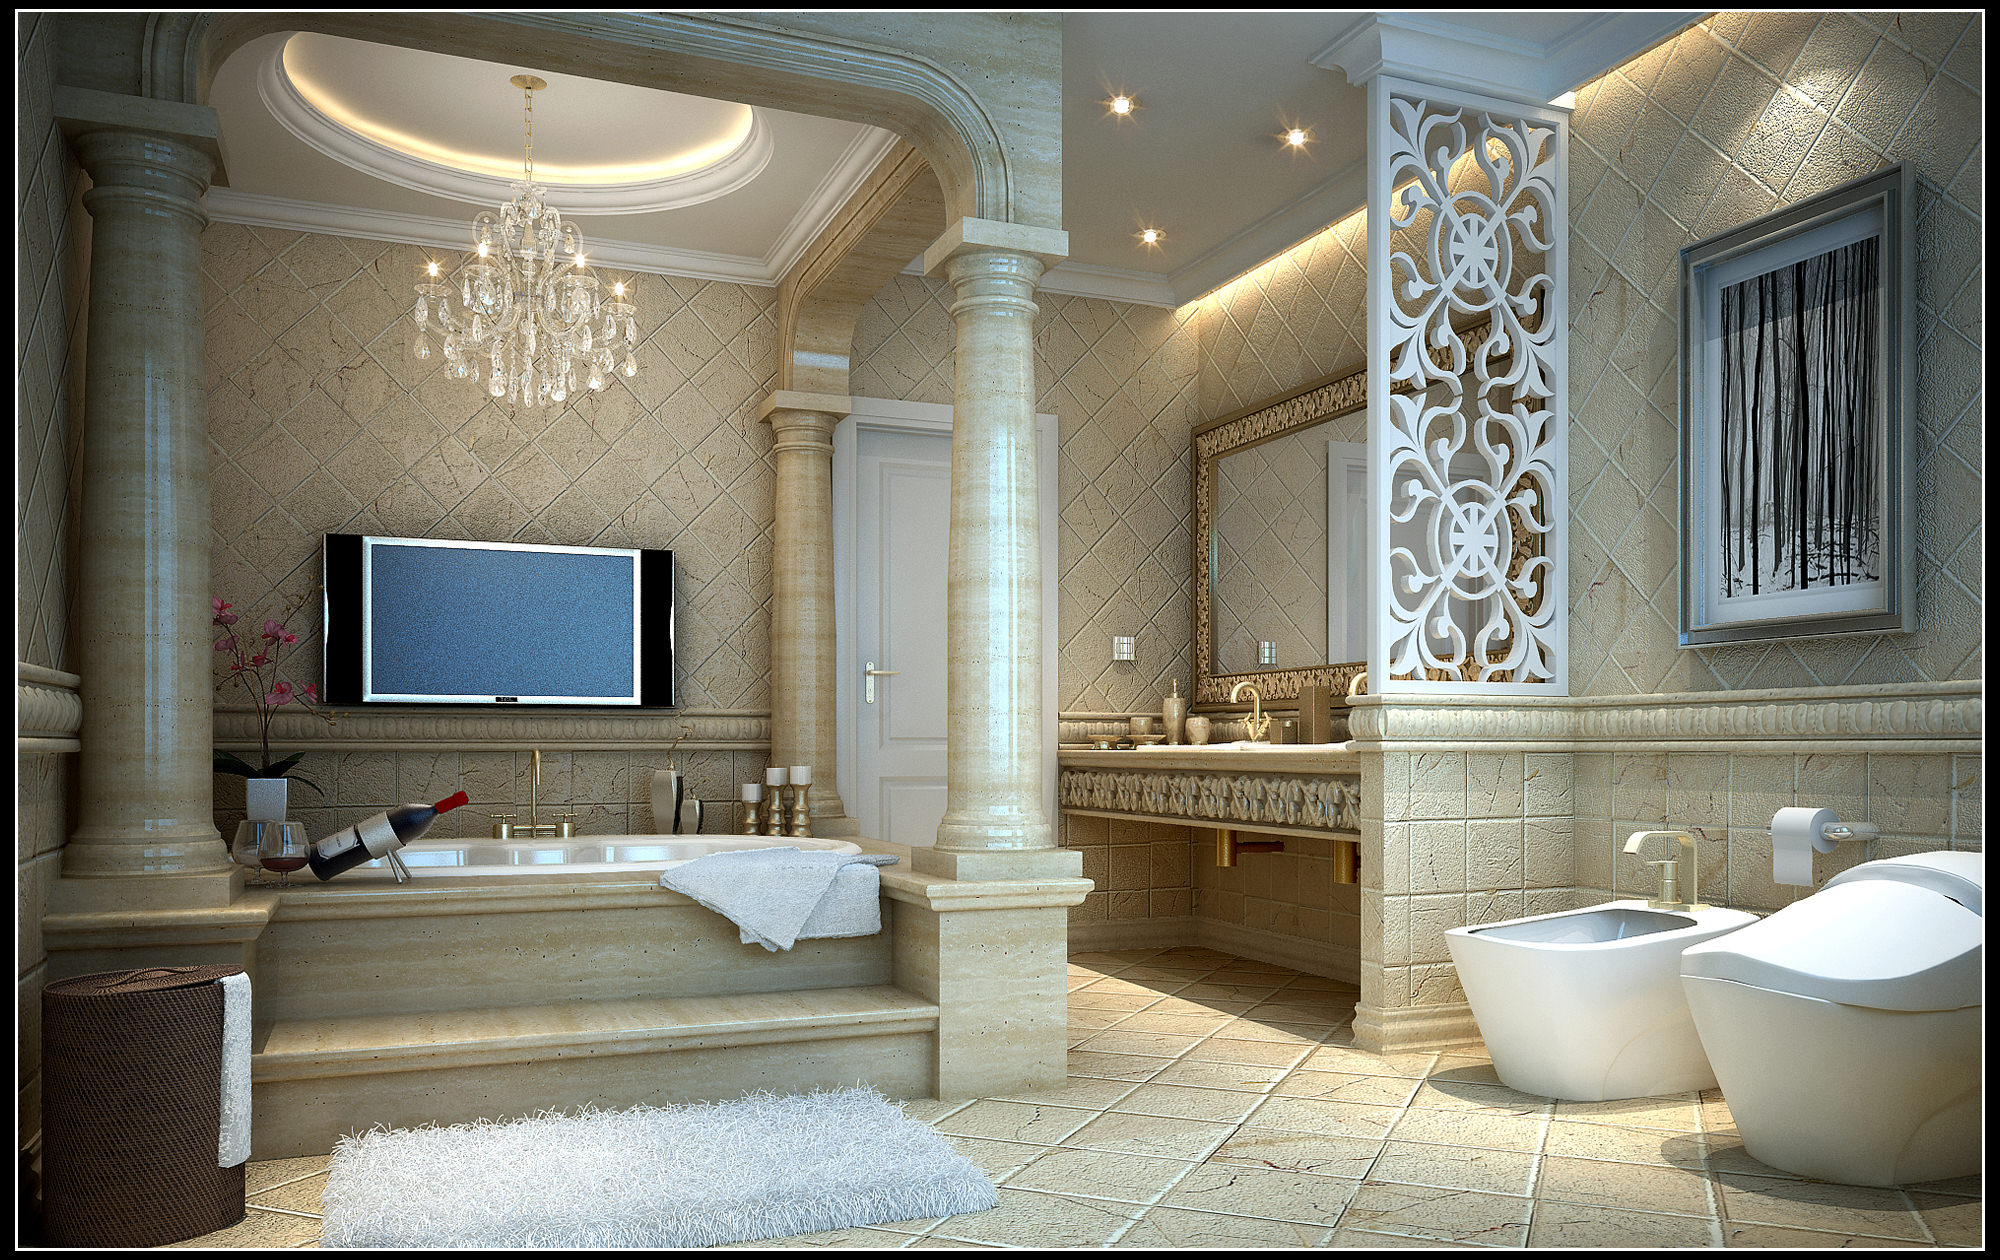 Model bathroom pictures -  Collection Modern Bathroom Fully Furnished Collection 3d Model Max 6